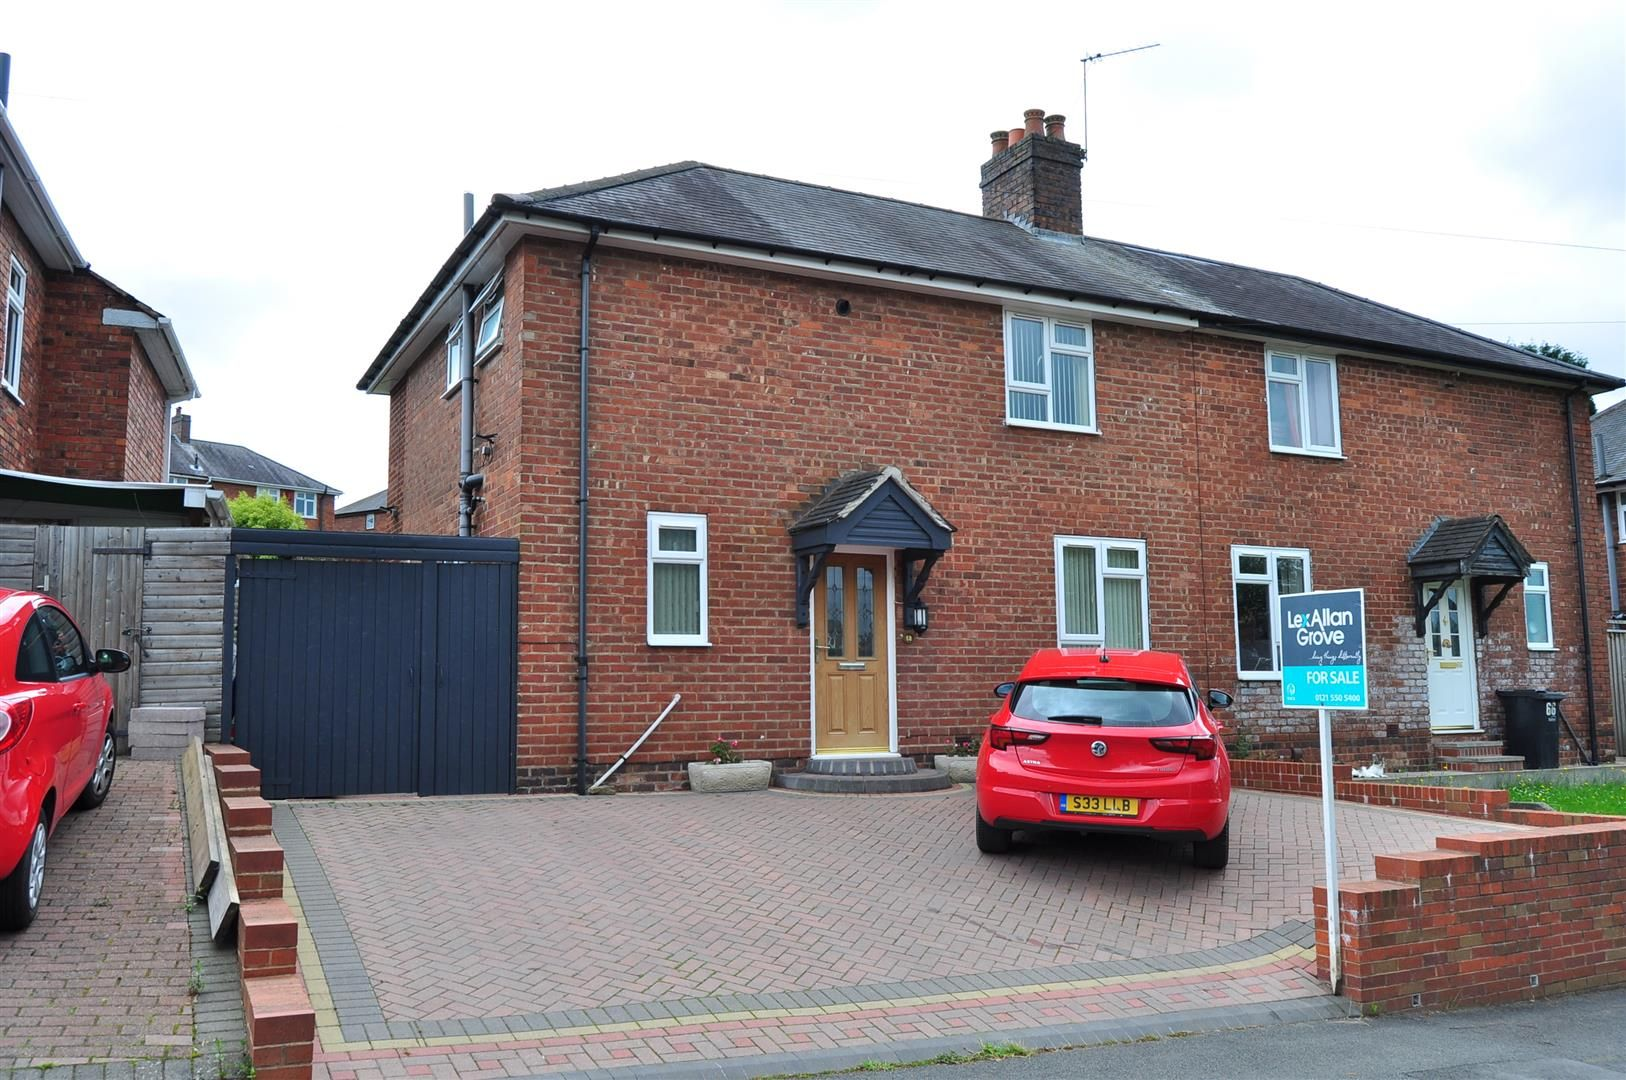 3 bed semi-detached for sale in Lower Gornal 1